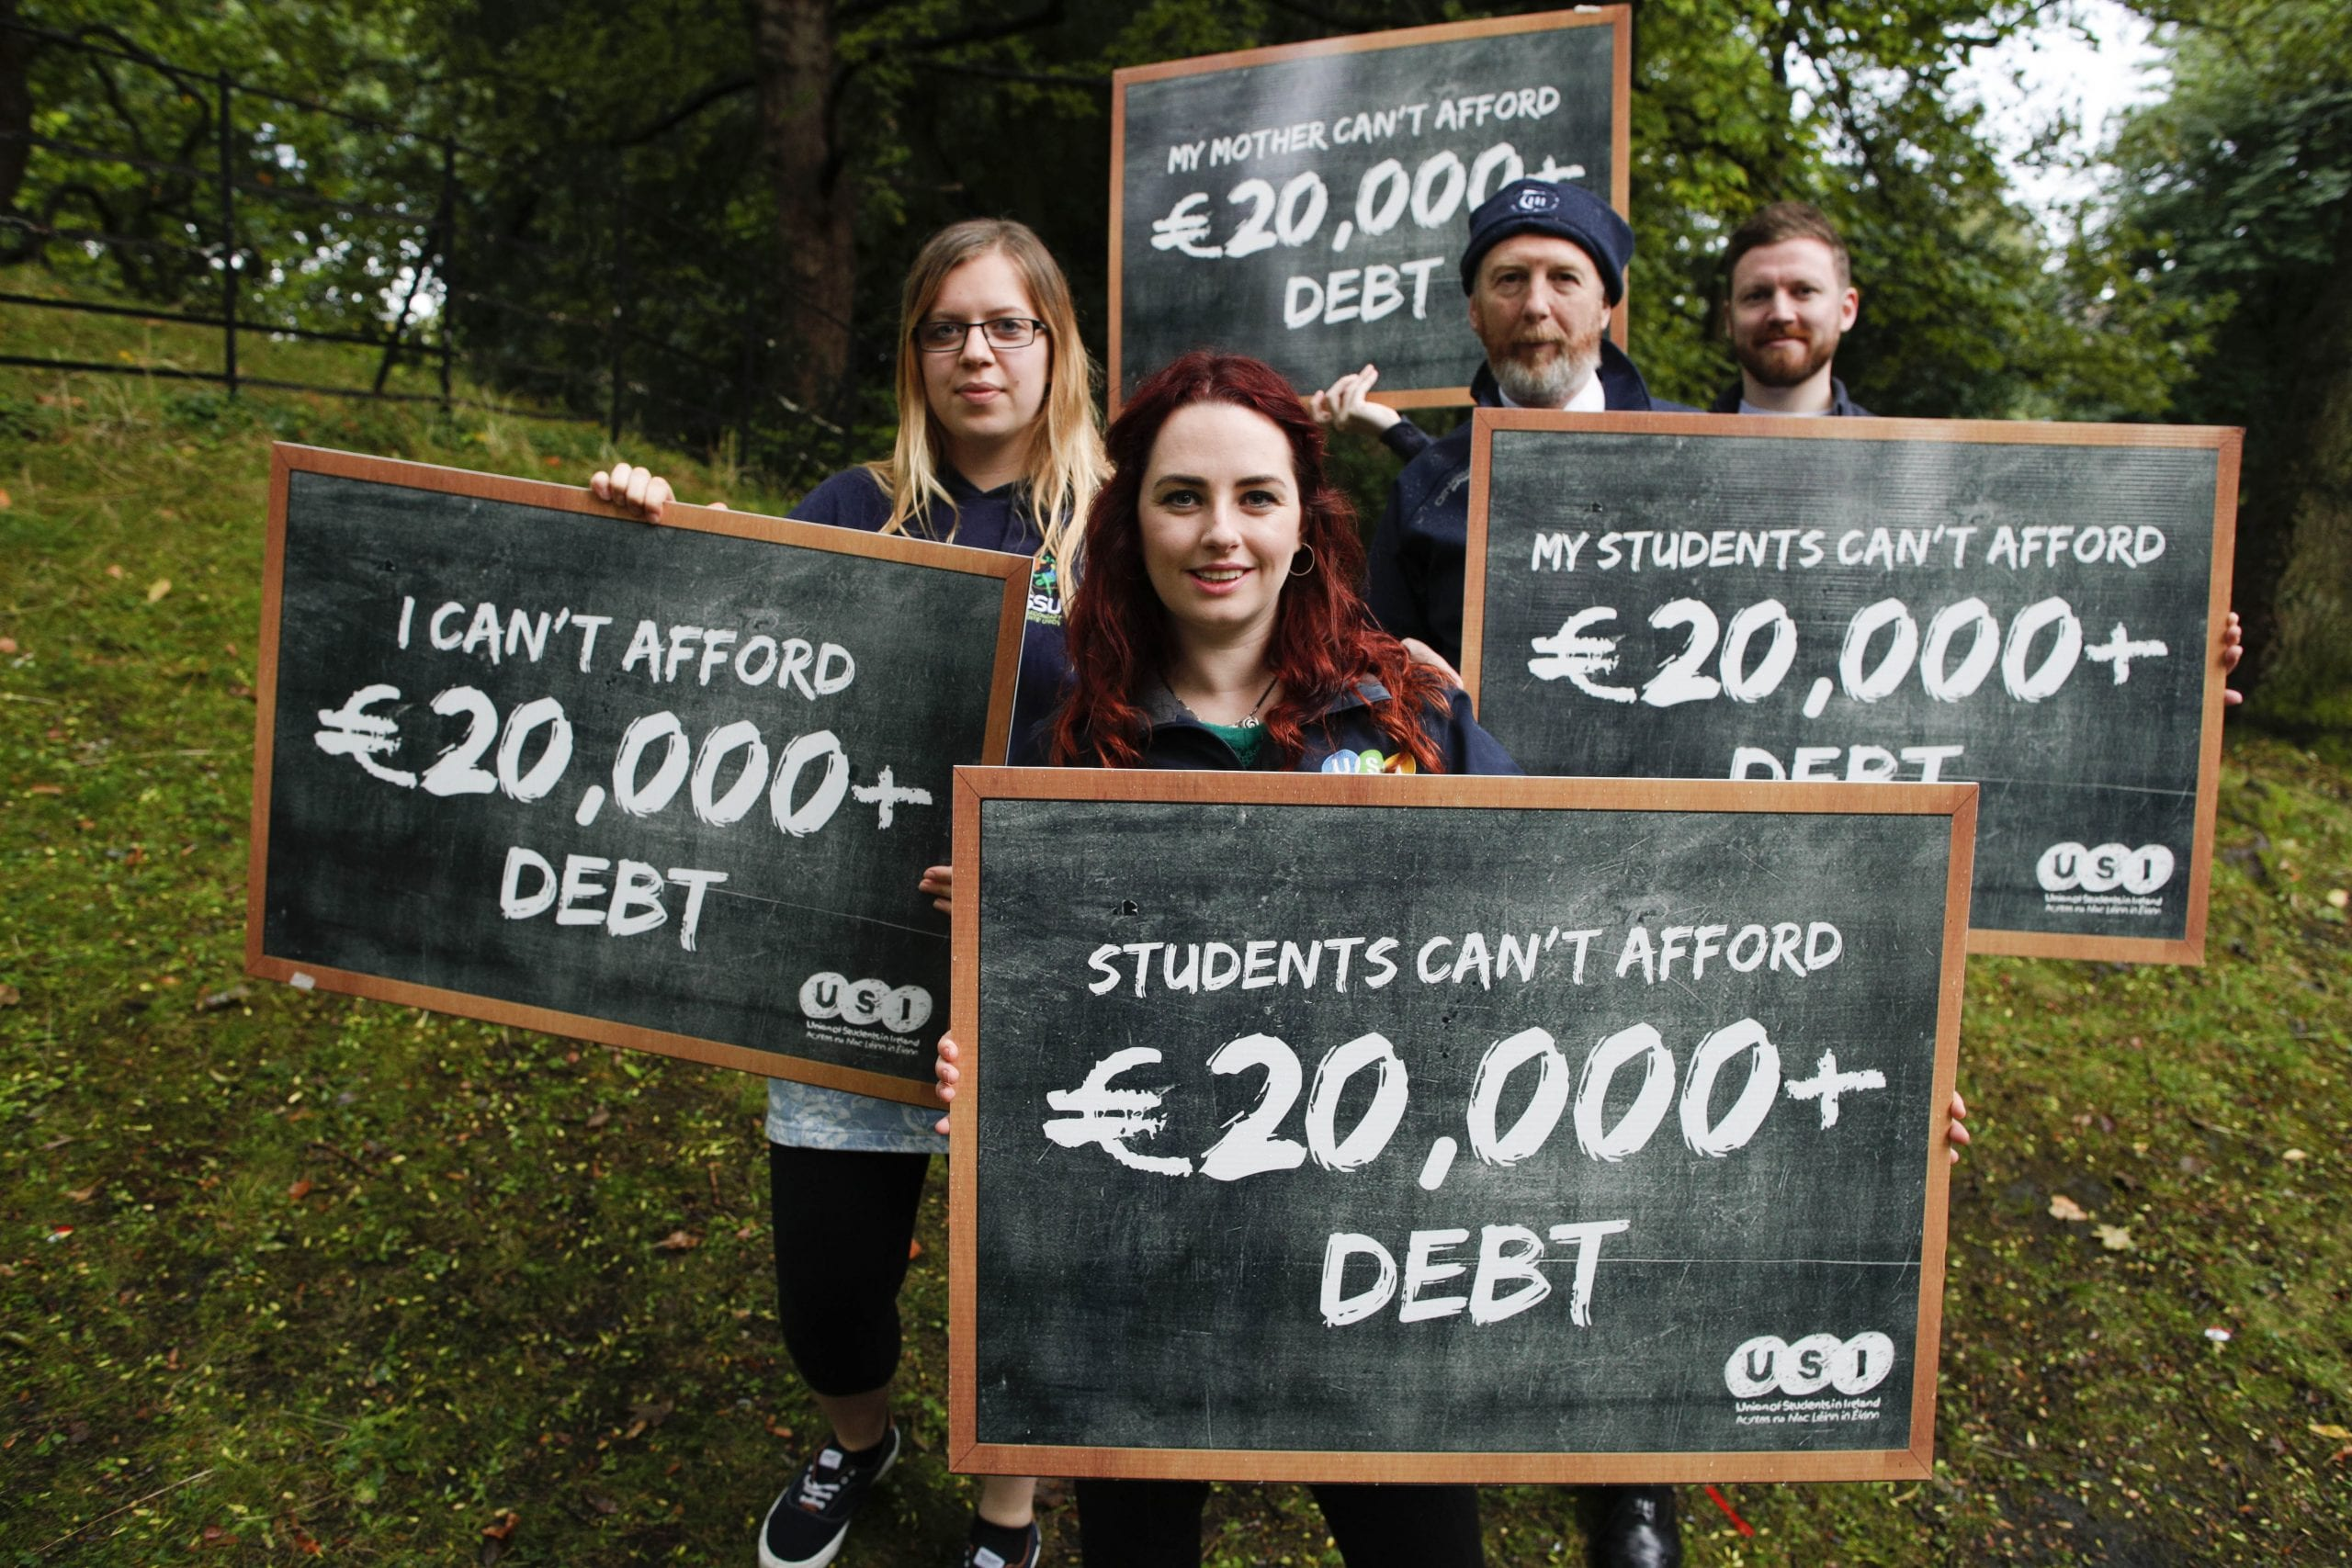 USI announce their national demo expected to draw 5,000 students